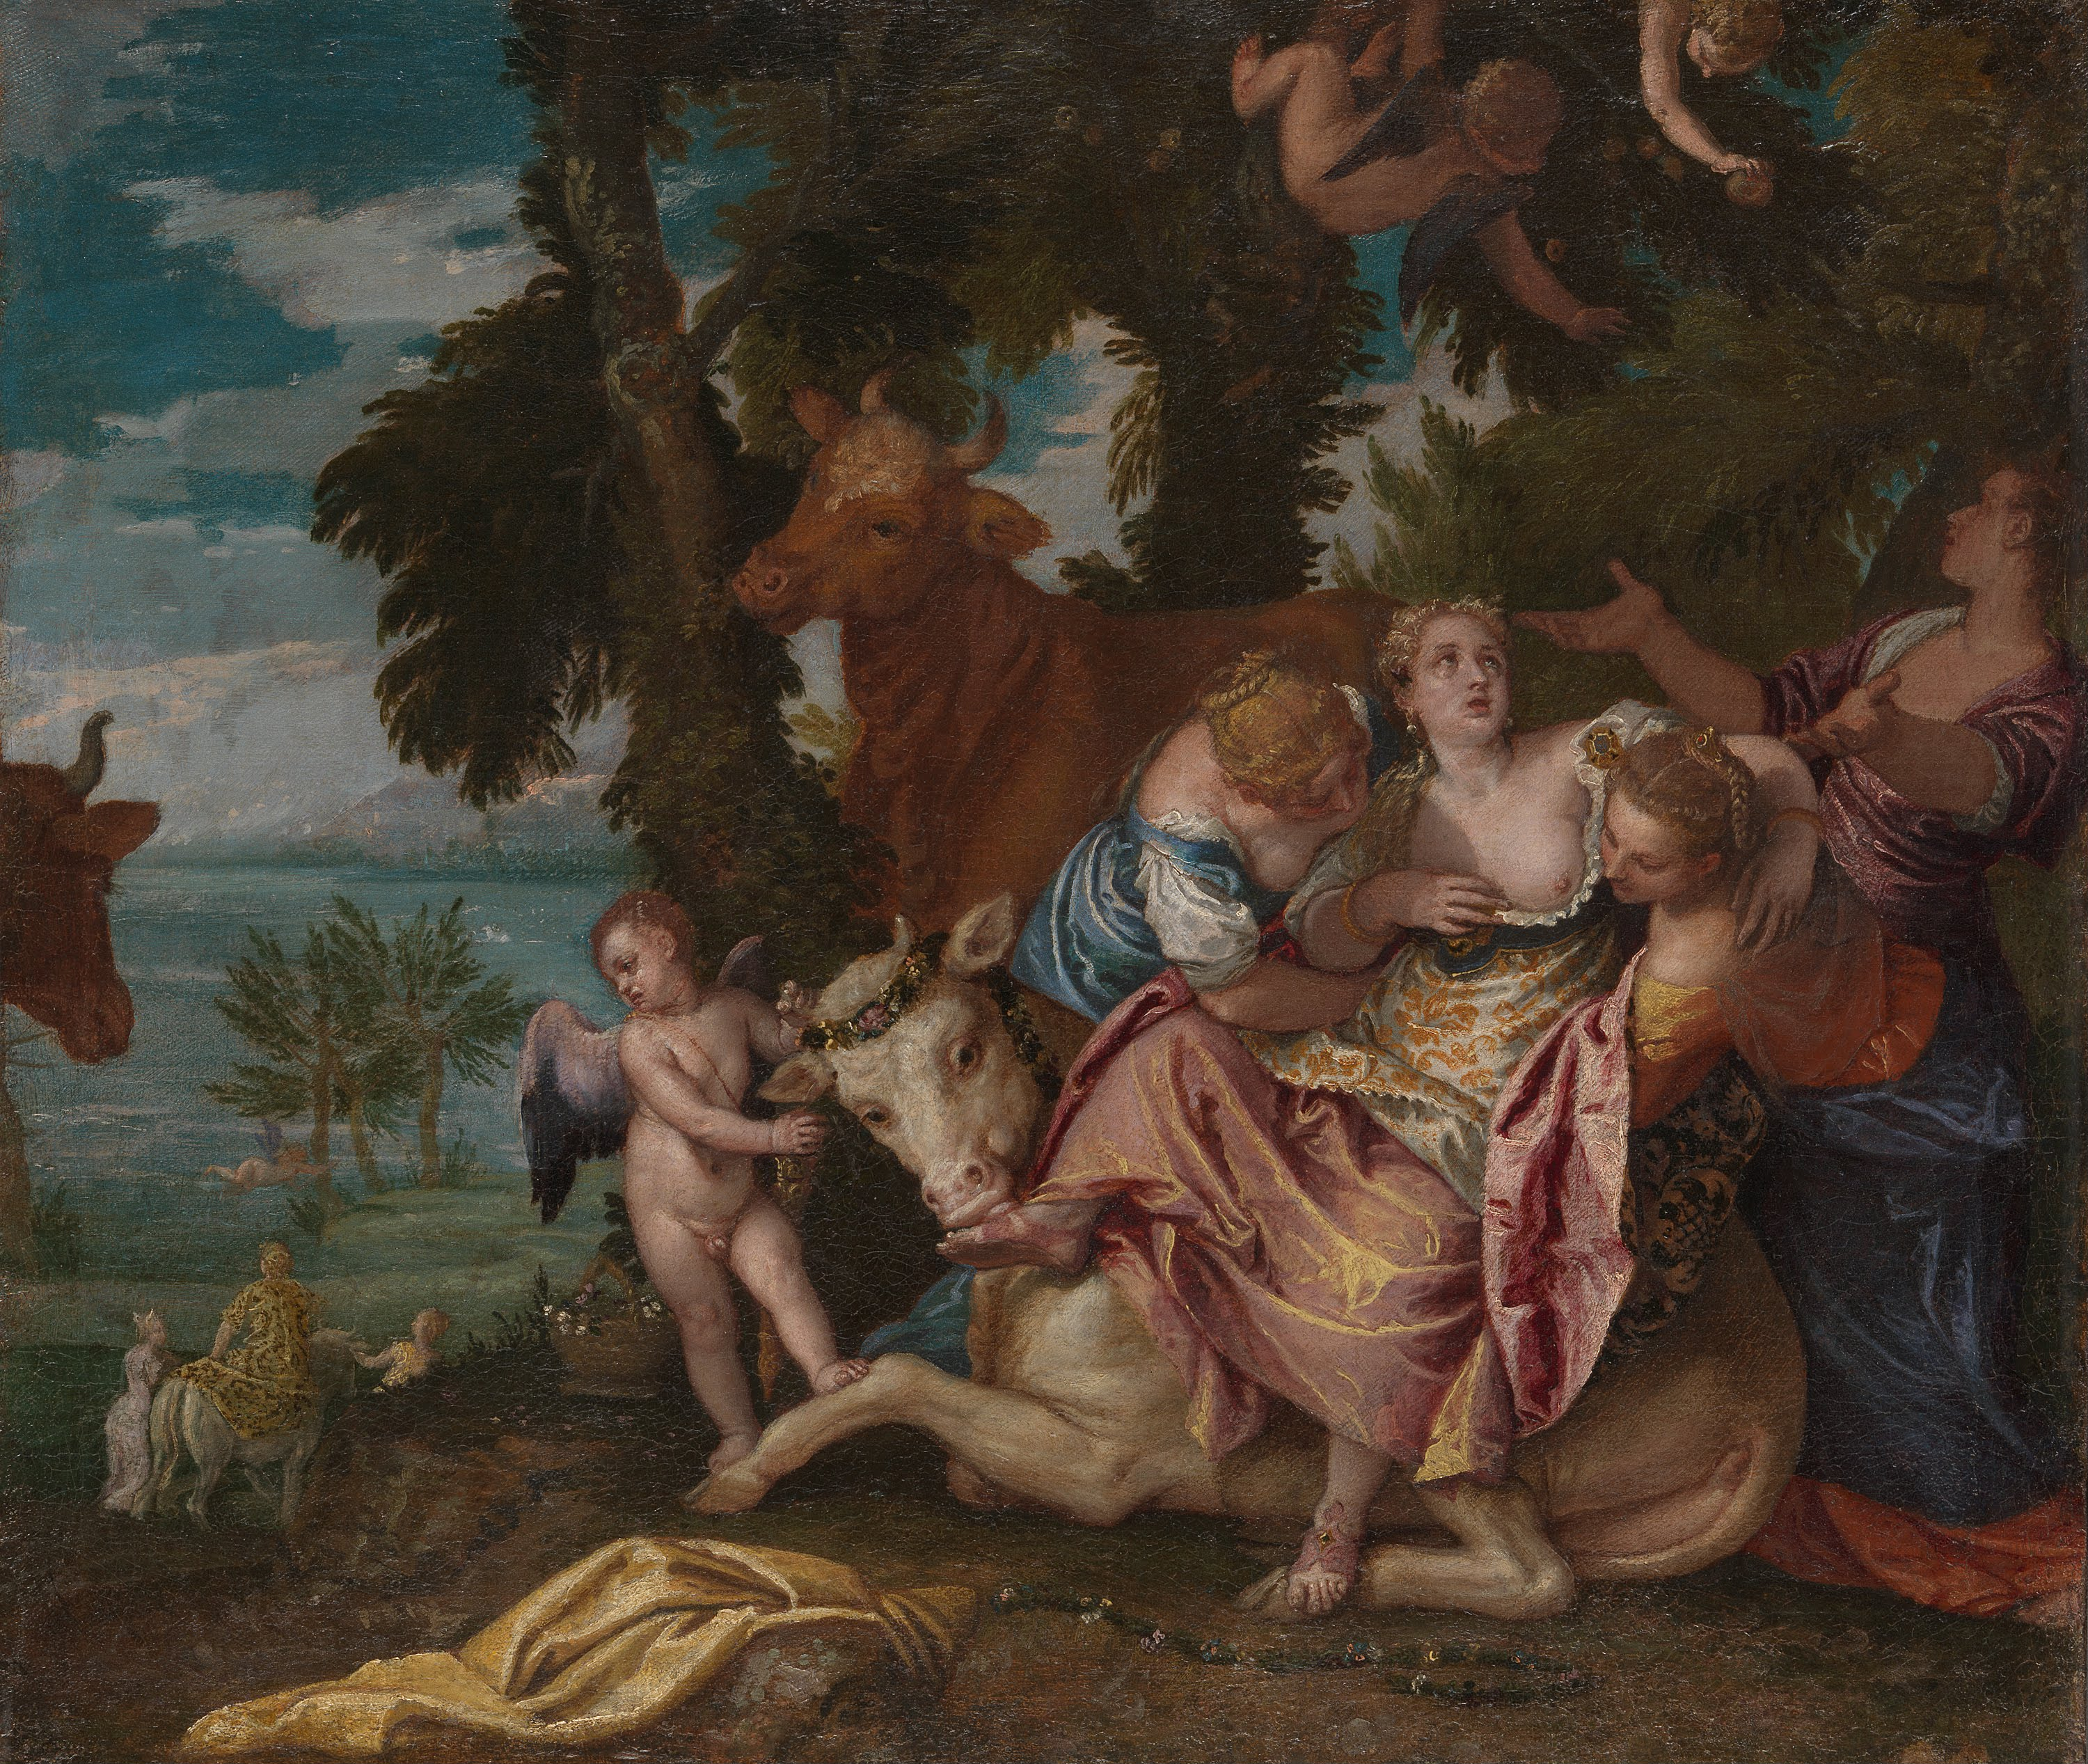 The Rape of Europa - Paolo Veronese - WikiPaintings.